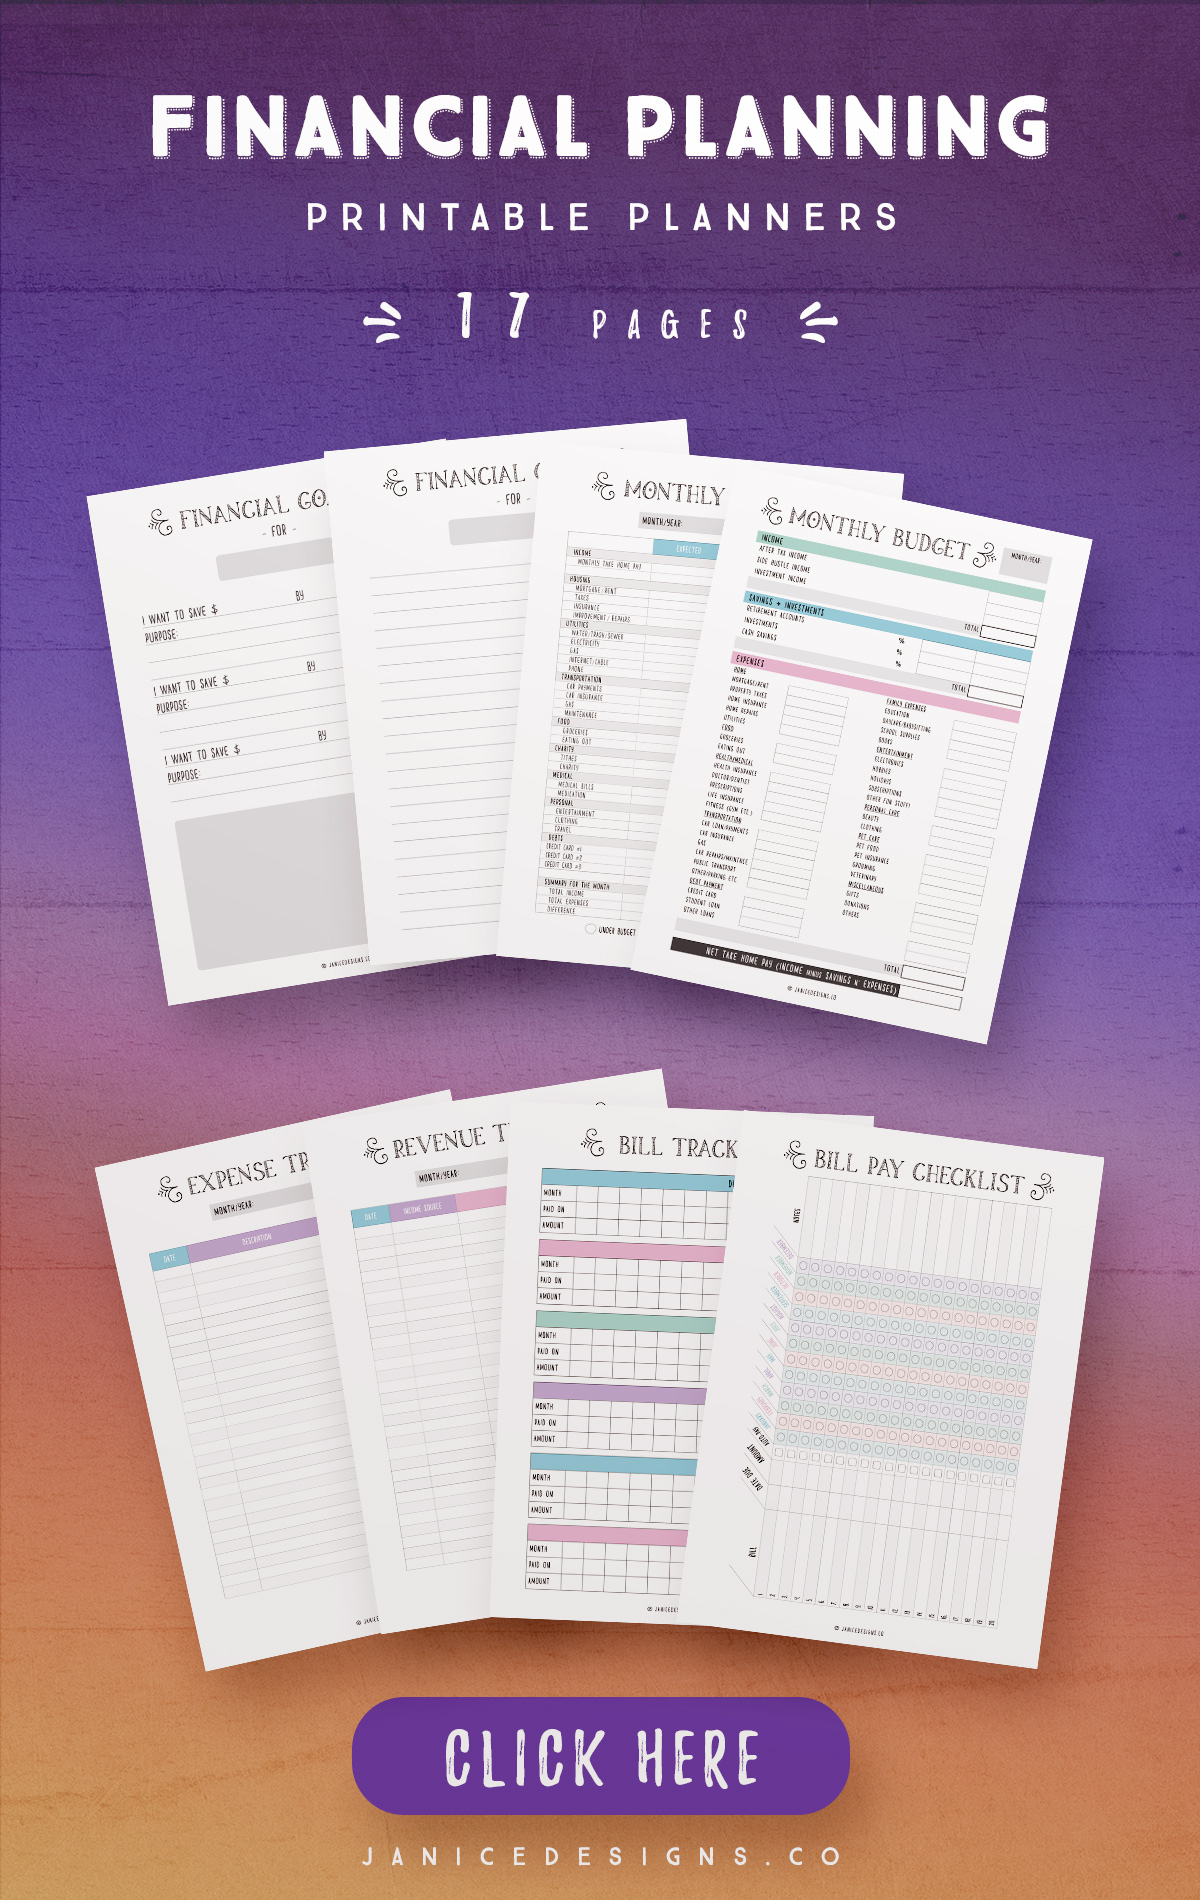 Financial Planning Printables -17 Pages example image 3